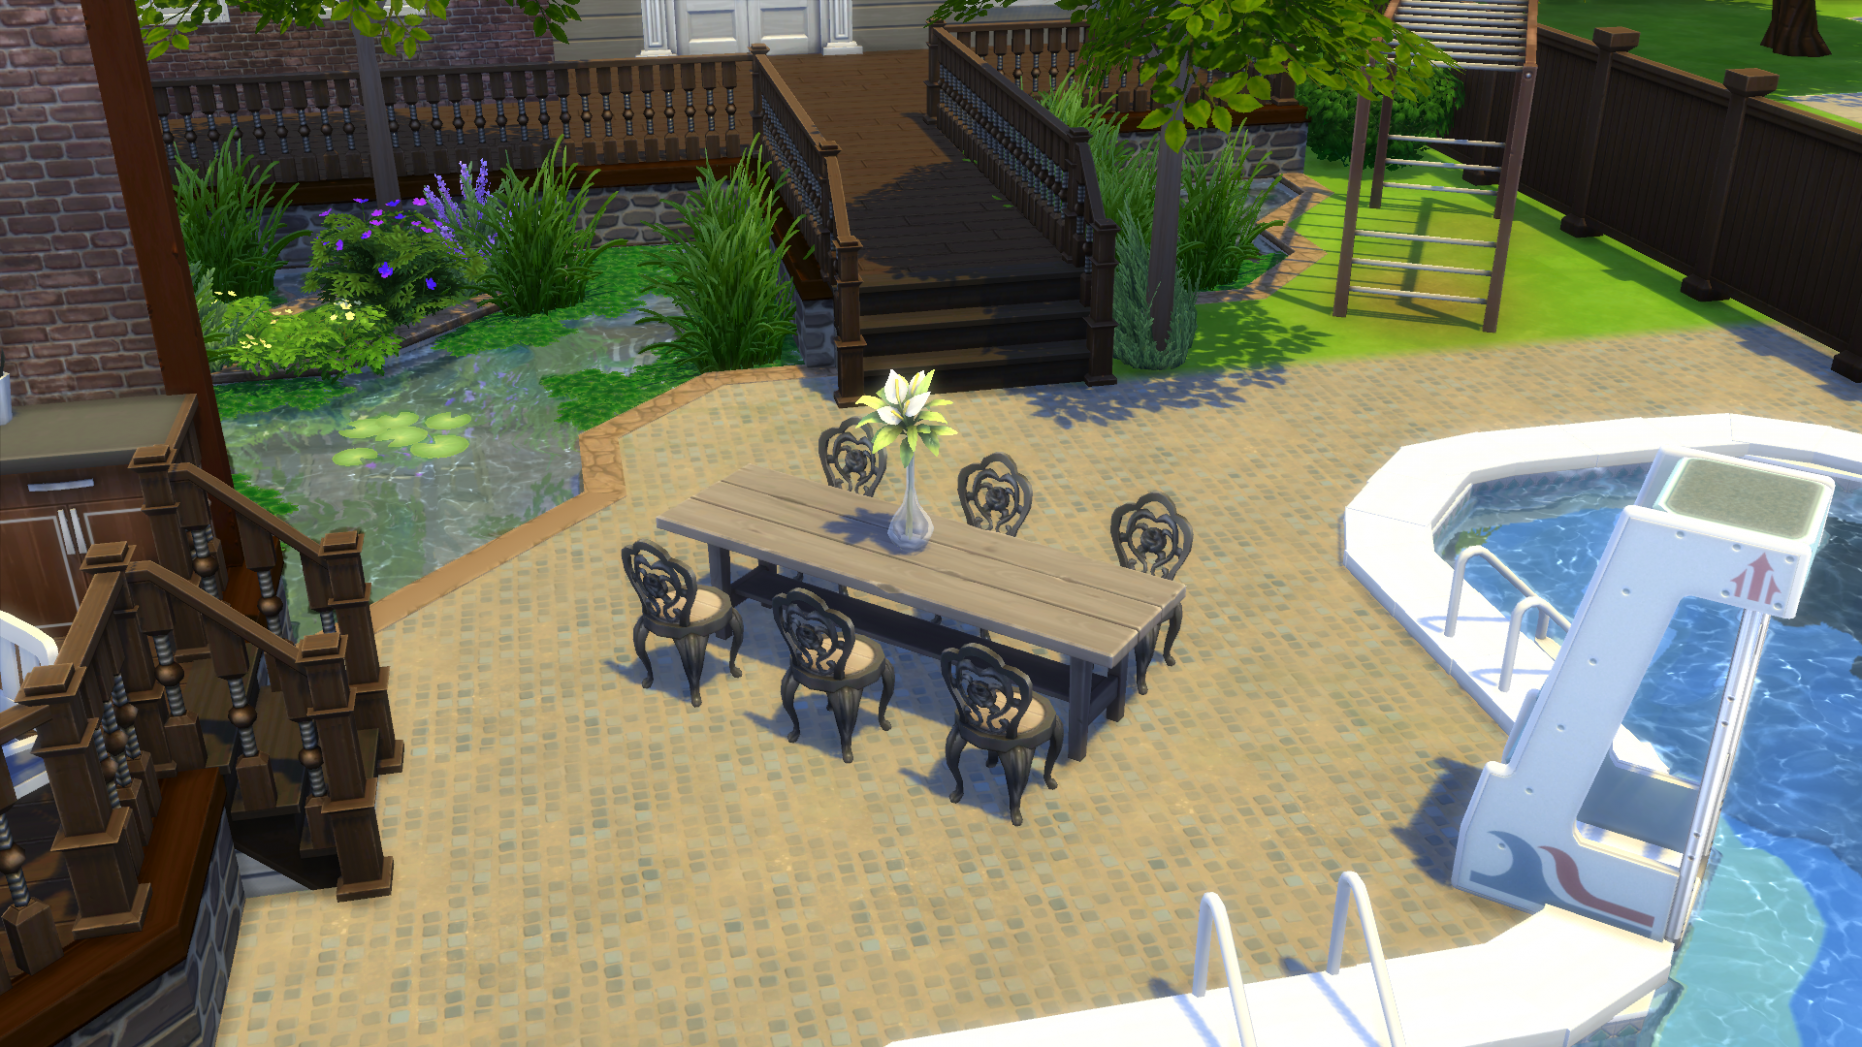 The Sims 9 Building: Decorating Your Backyard - backyard ideas sims 4